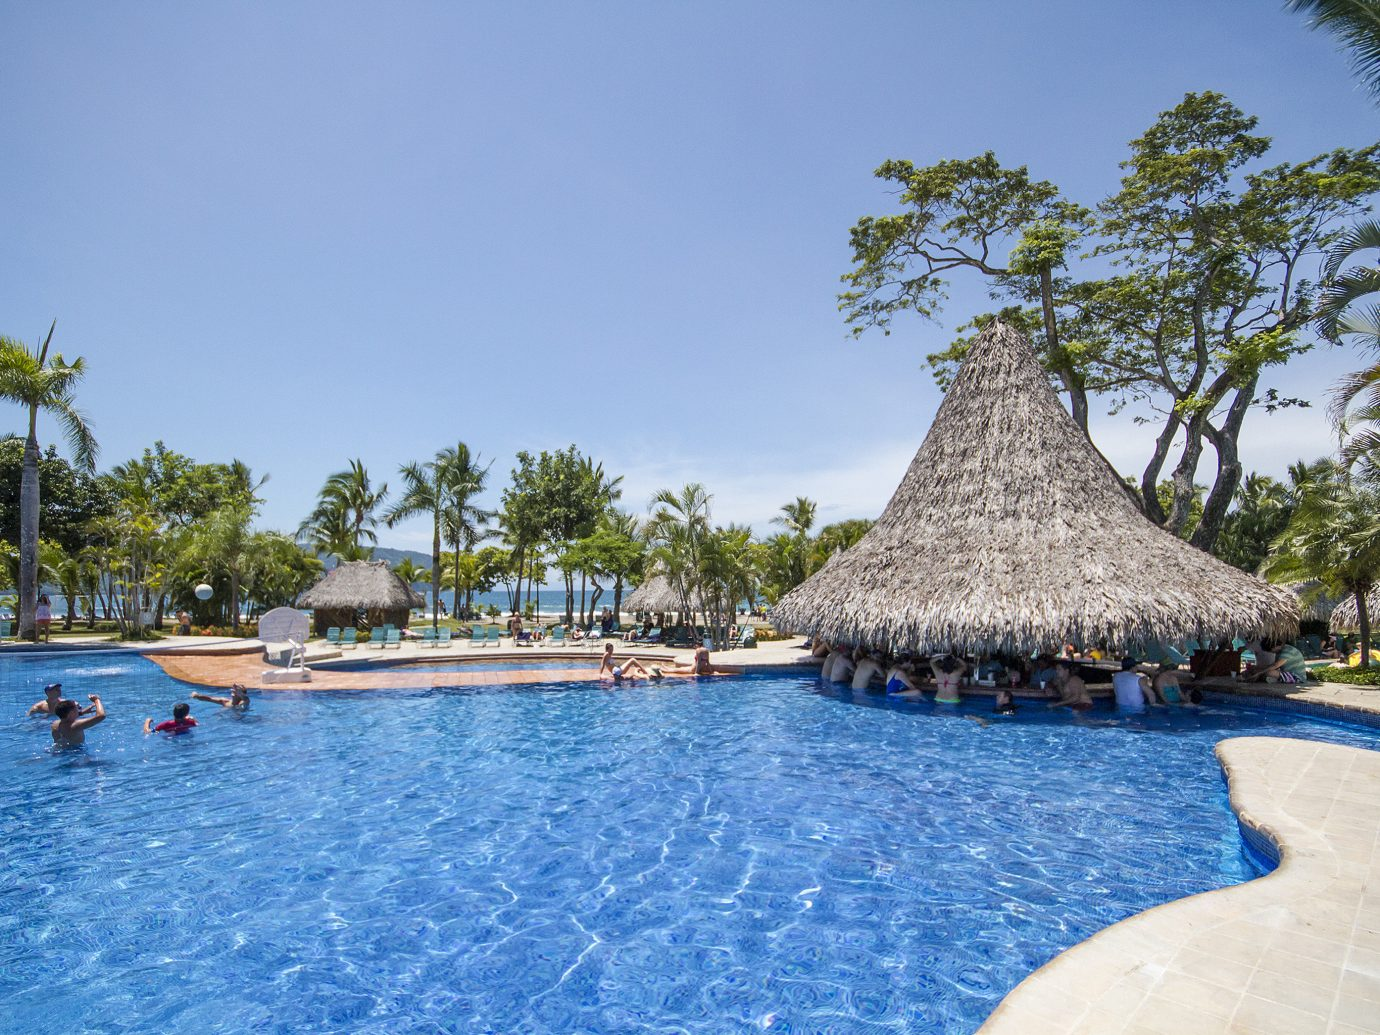 Pool at Barcelo Tambor in Costa Rica